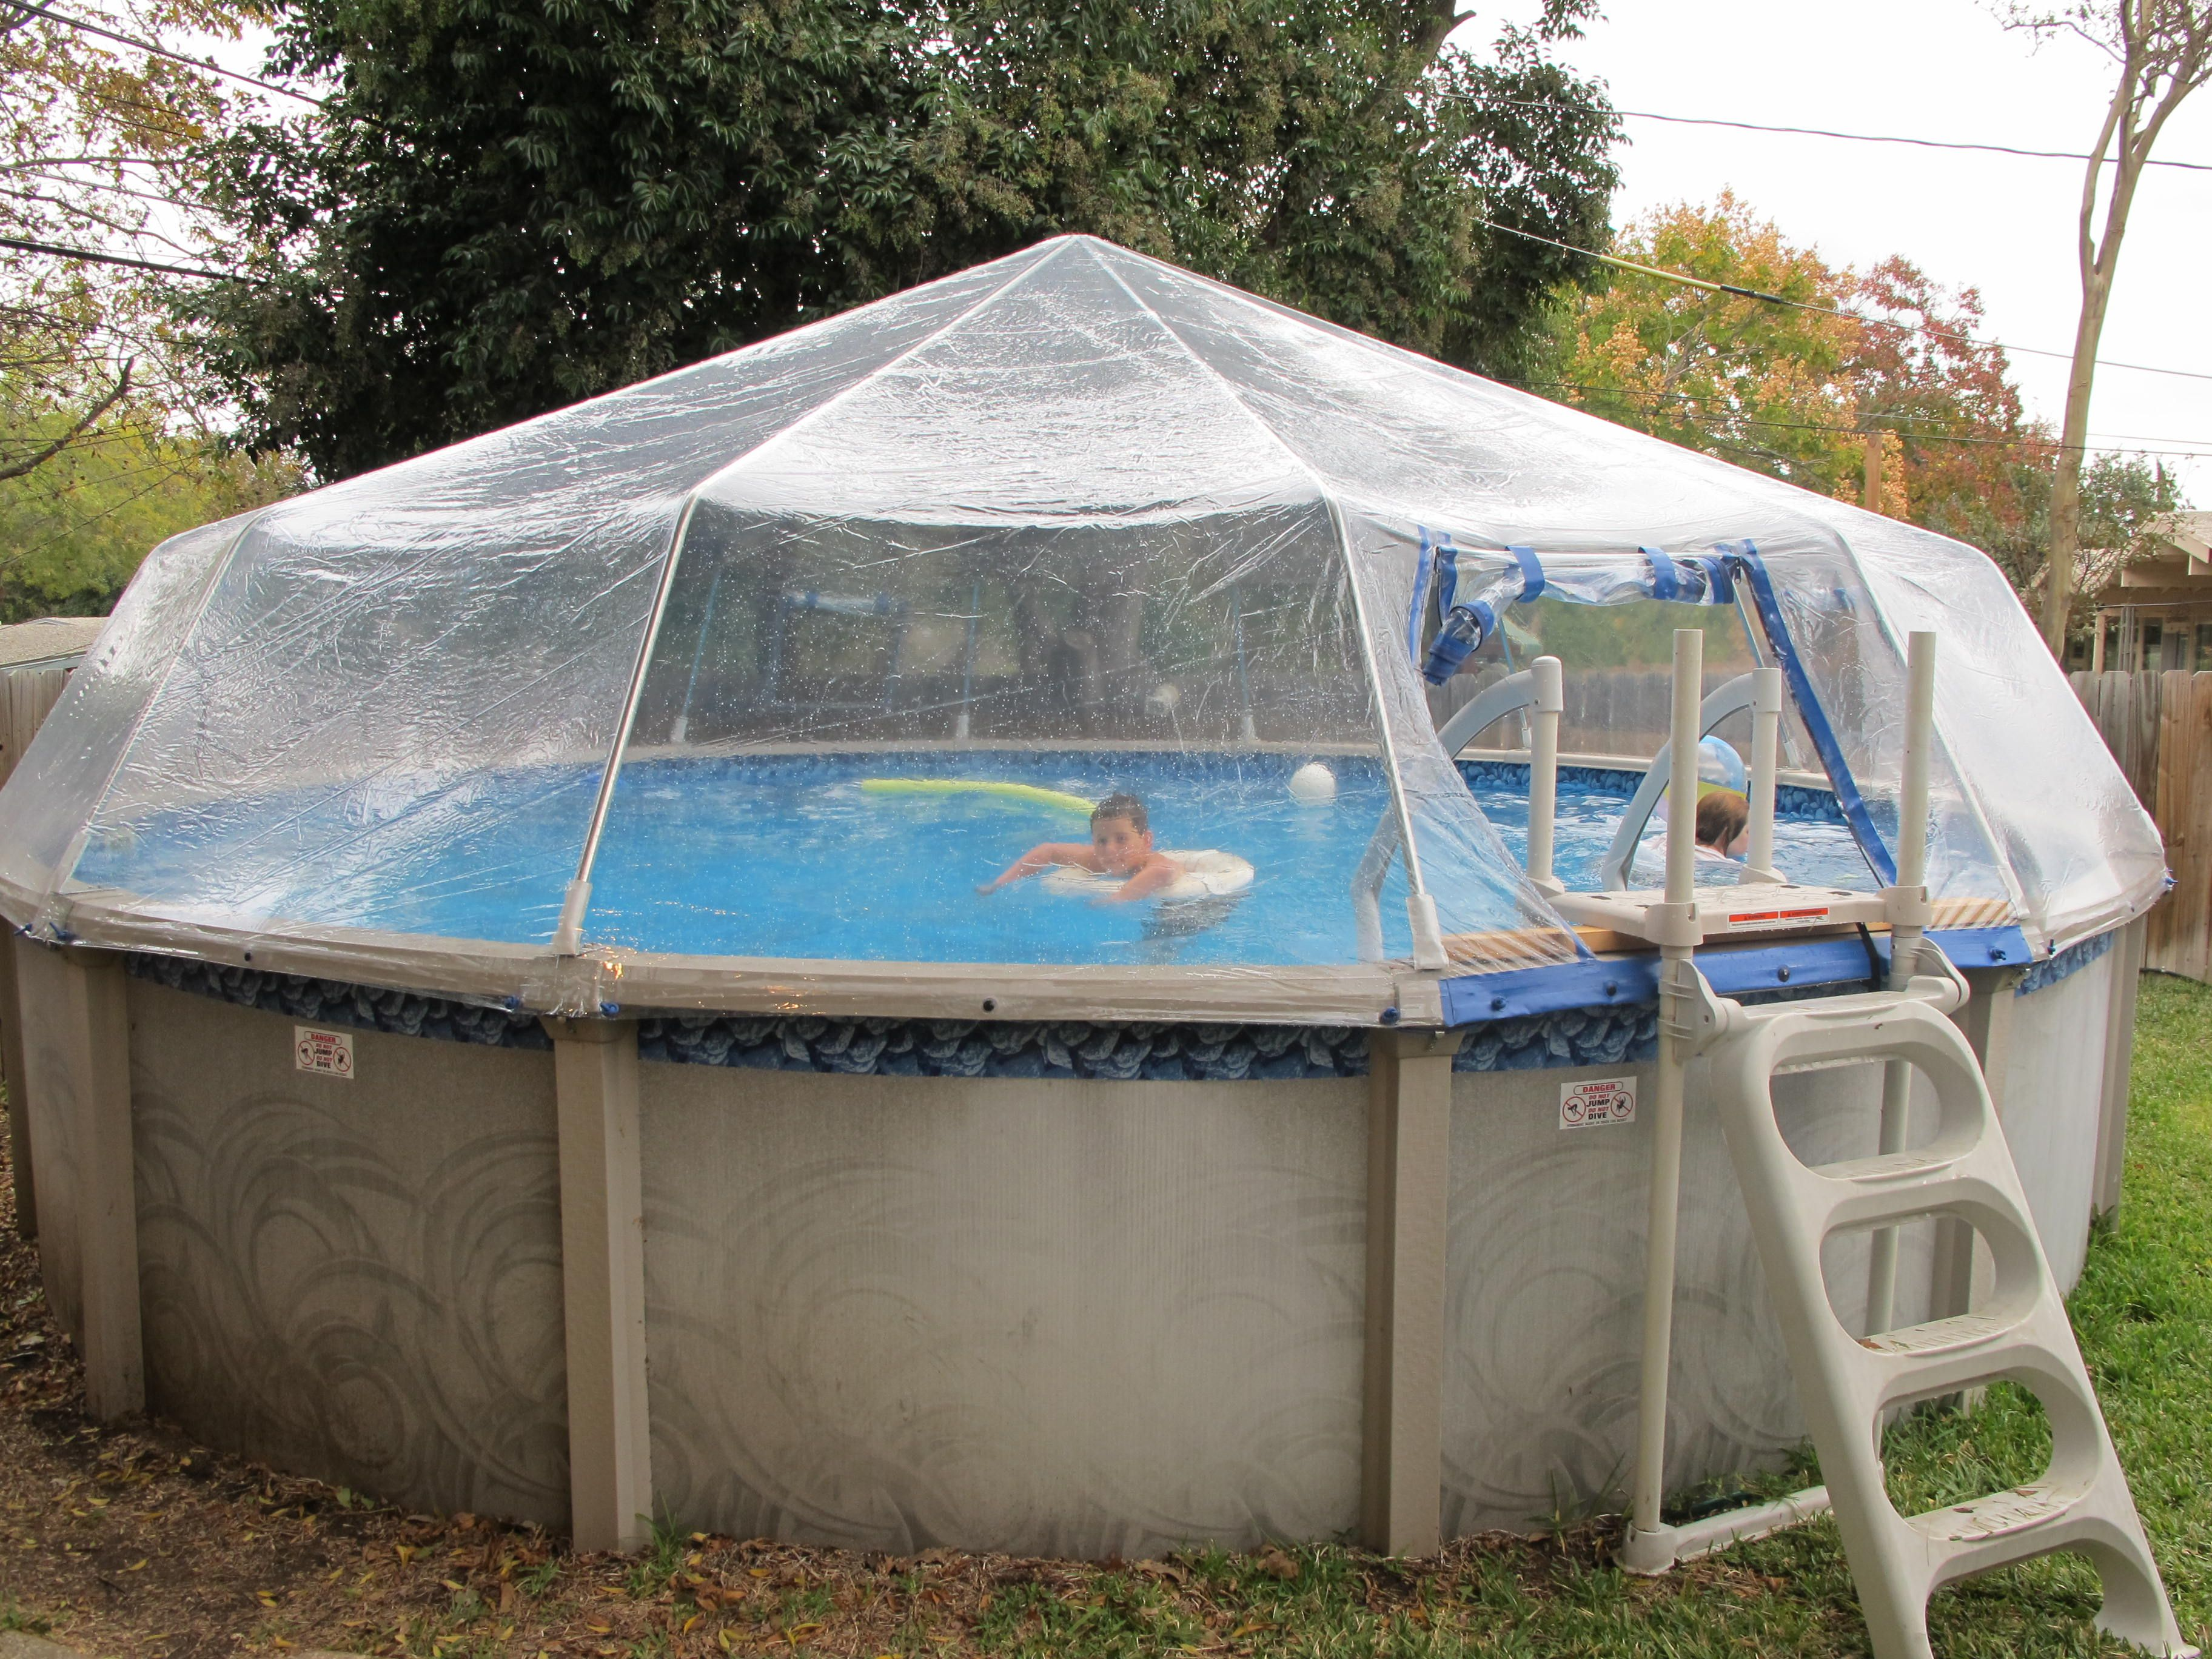 Solarheizung Pool Youtube Above Ground Pool Dome Design Decor 32591 Decorating Ideas